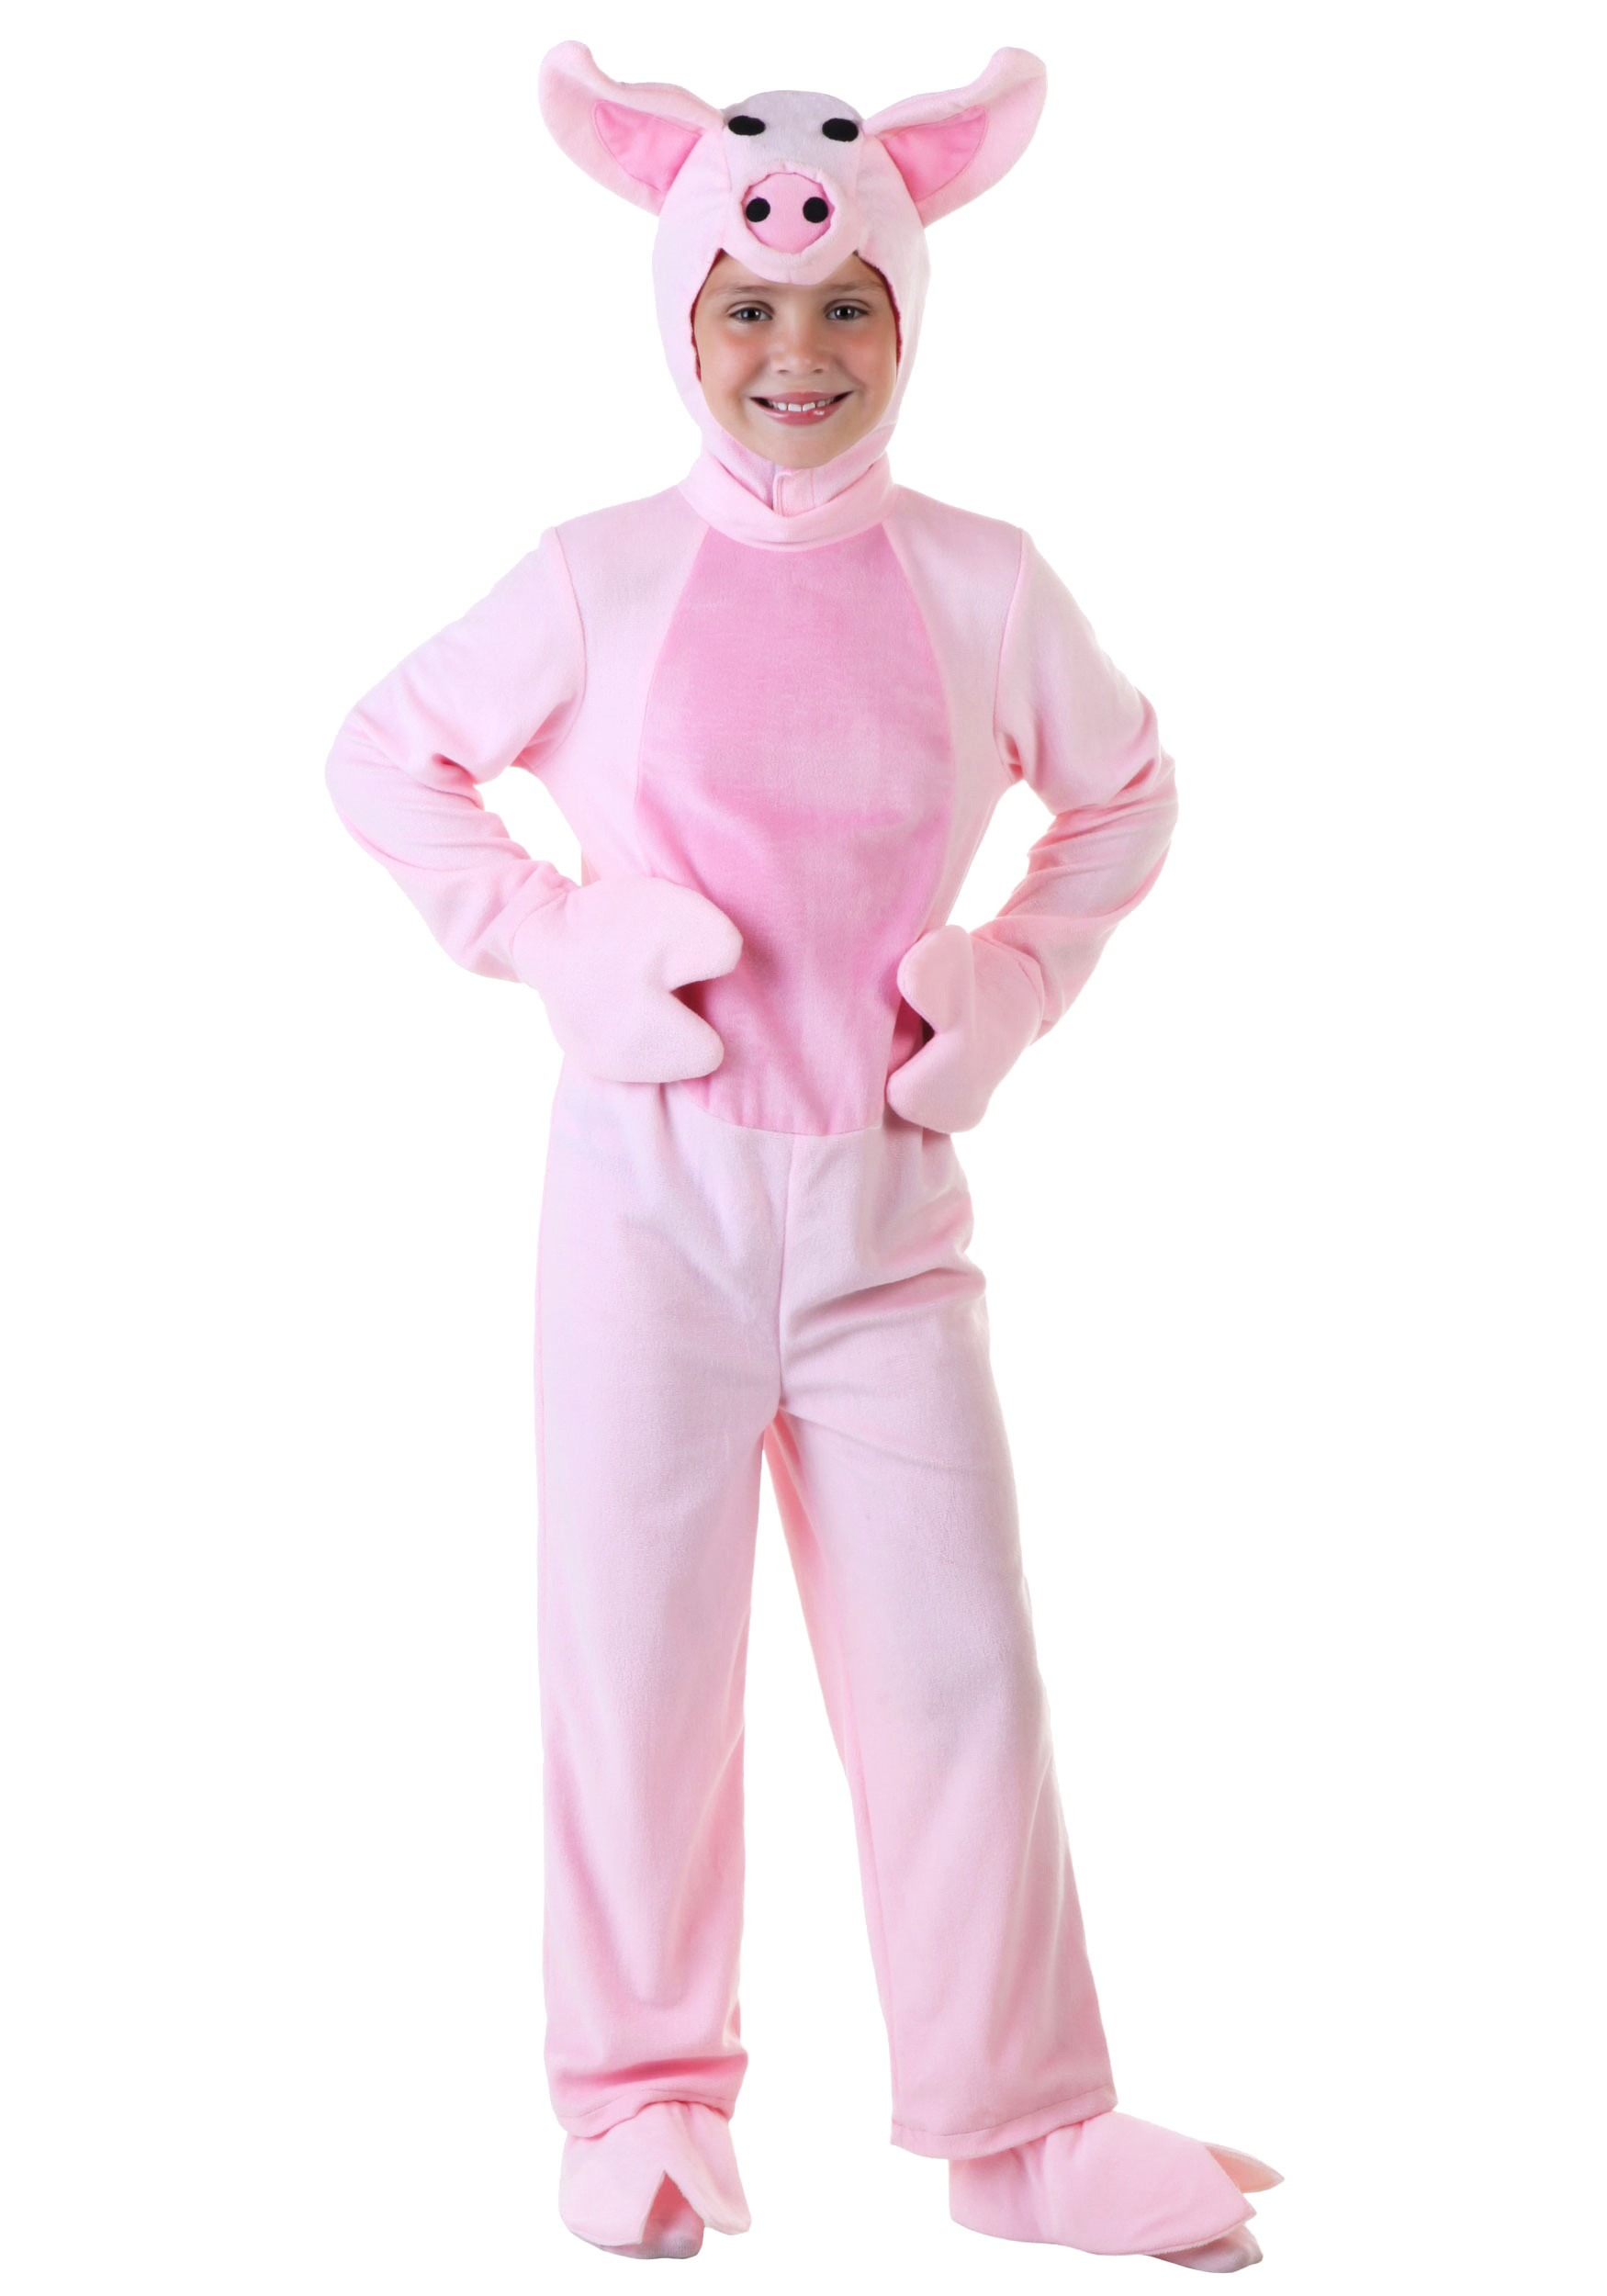 Pig costumes for adults kids halloweencostumes kids pig costume solutioingenieria Gallery